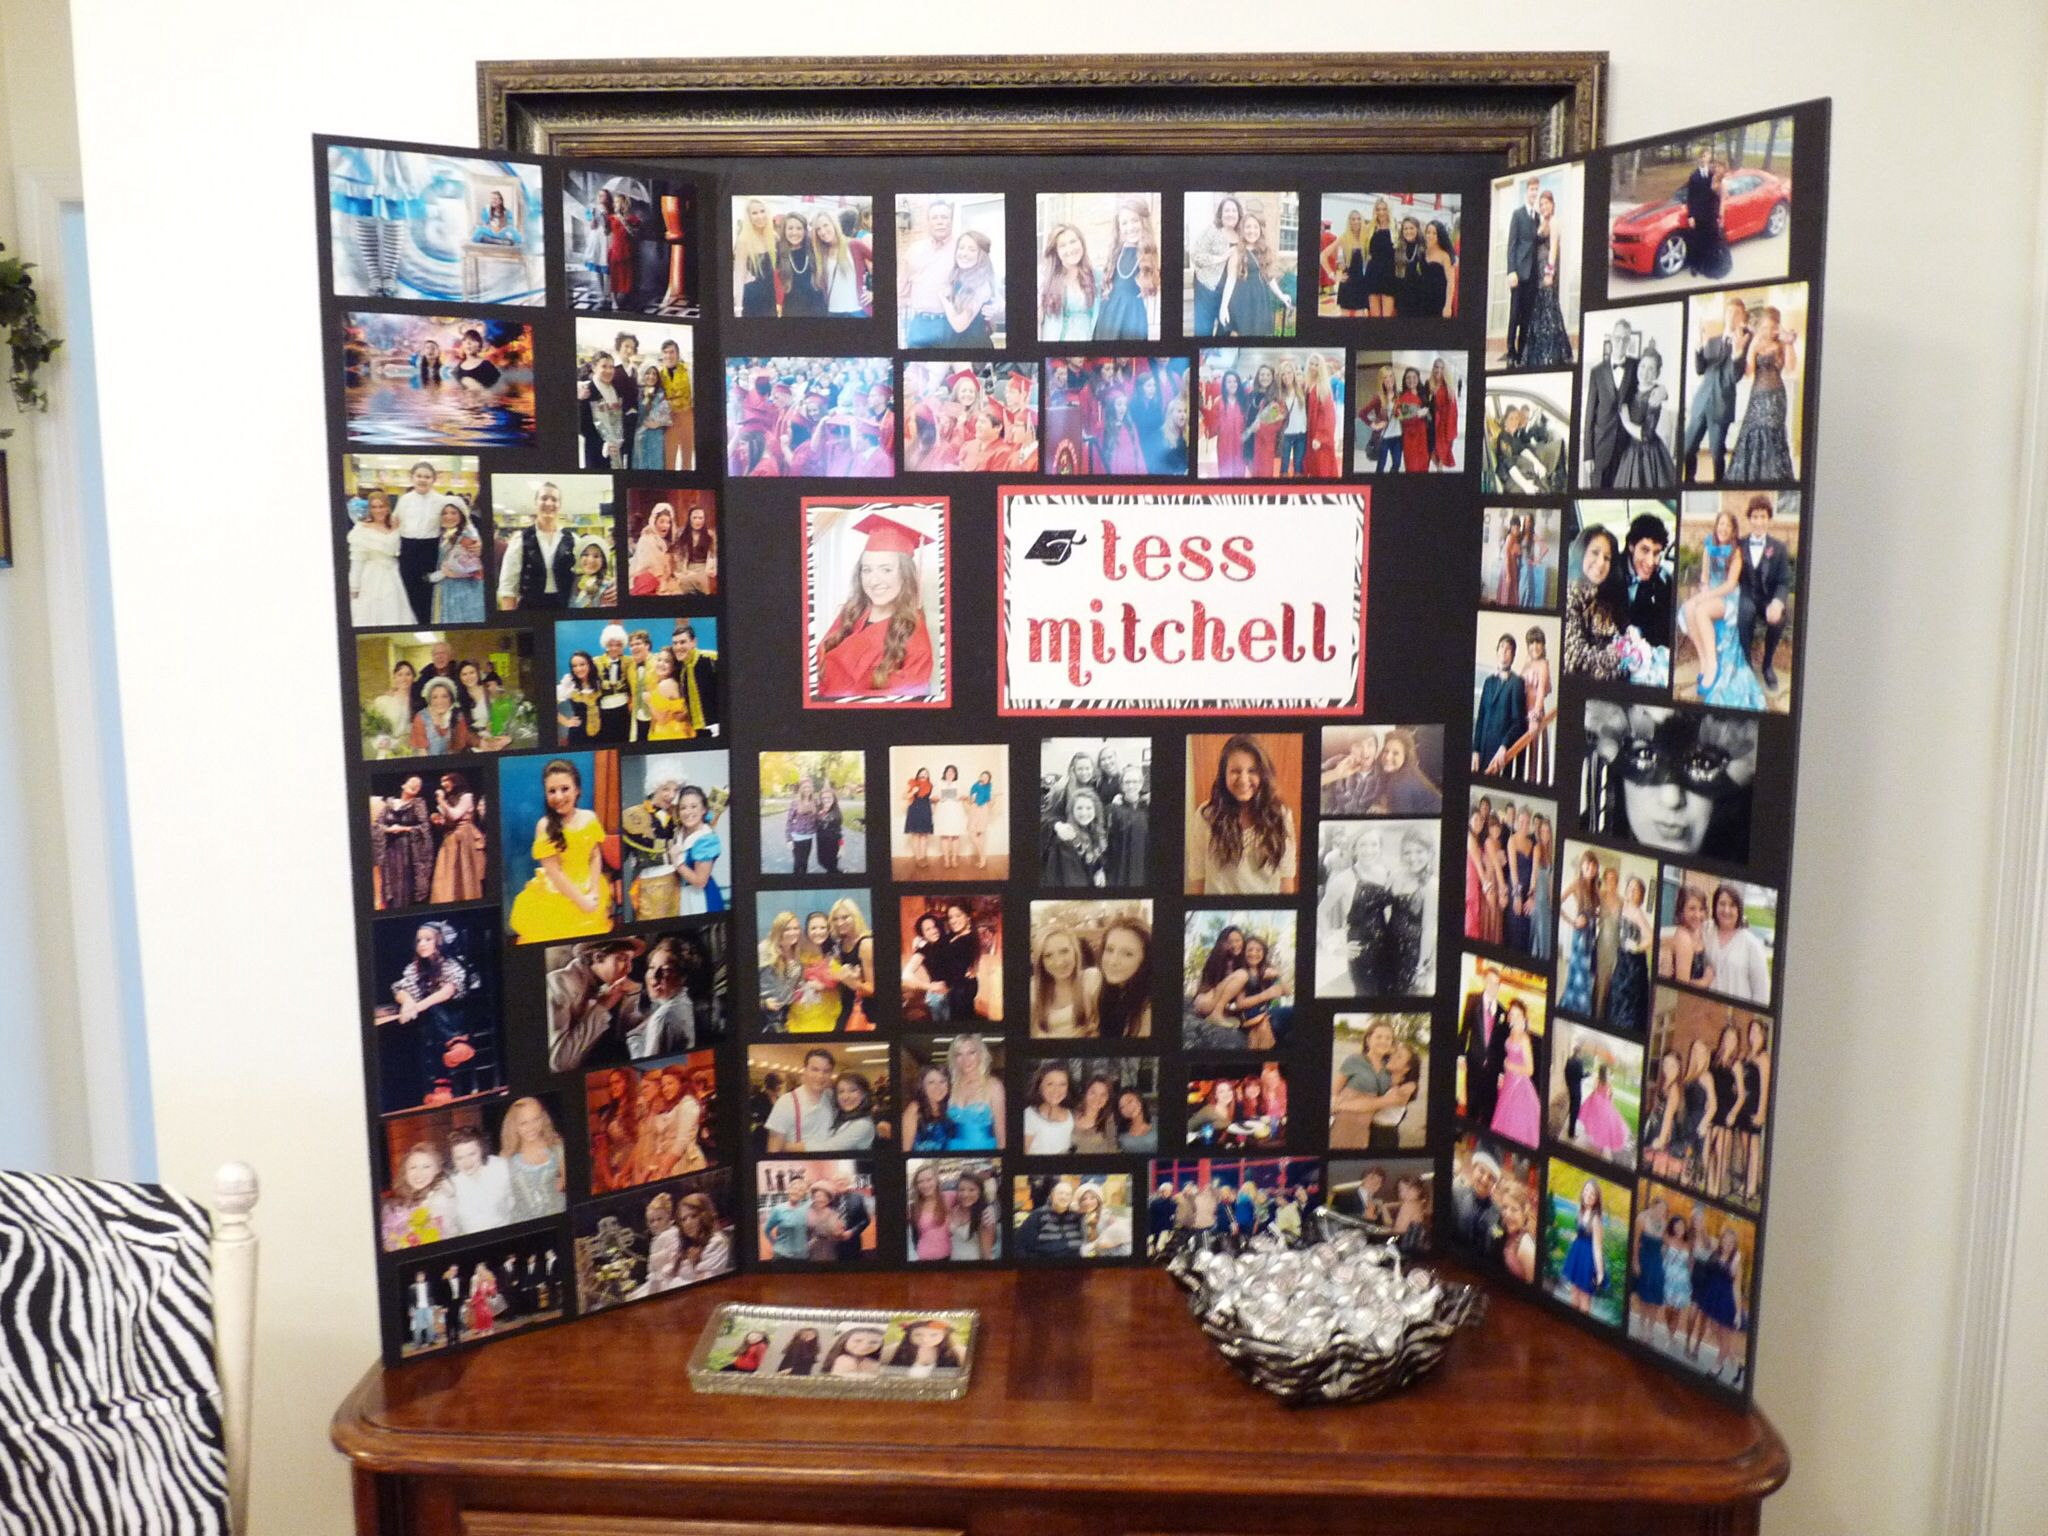 Pin By Sarah Mitchell On Graduation Party Plans Graduation Party Picture Display Graduation Party Pictures Graduation Photo Displays